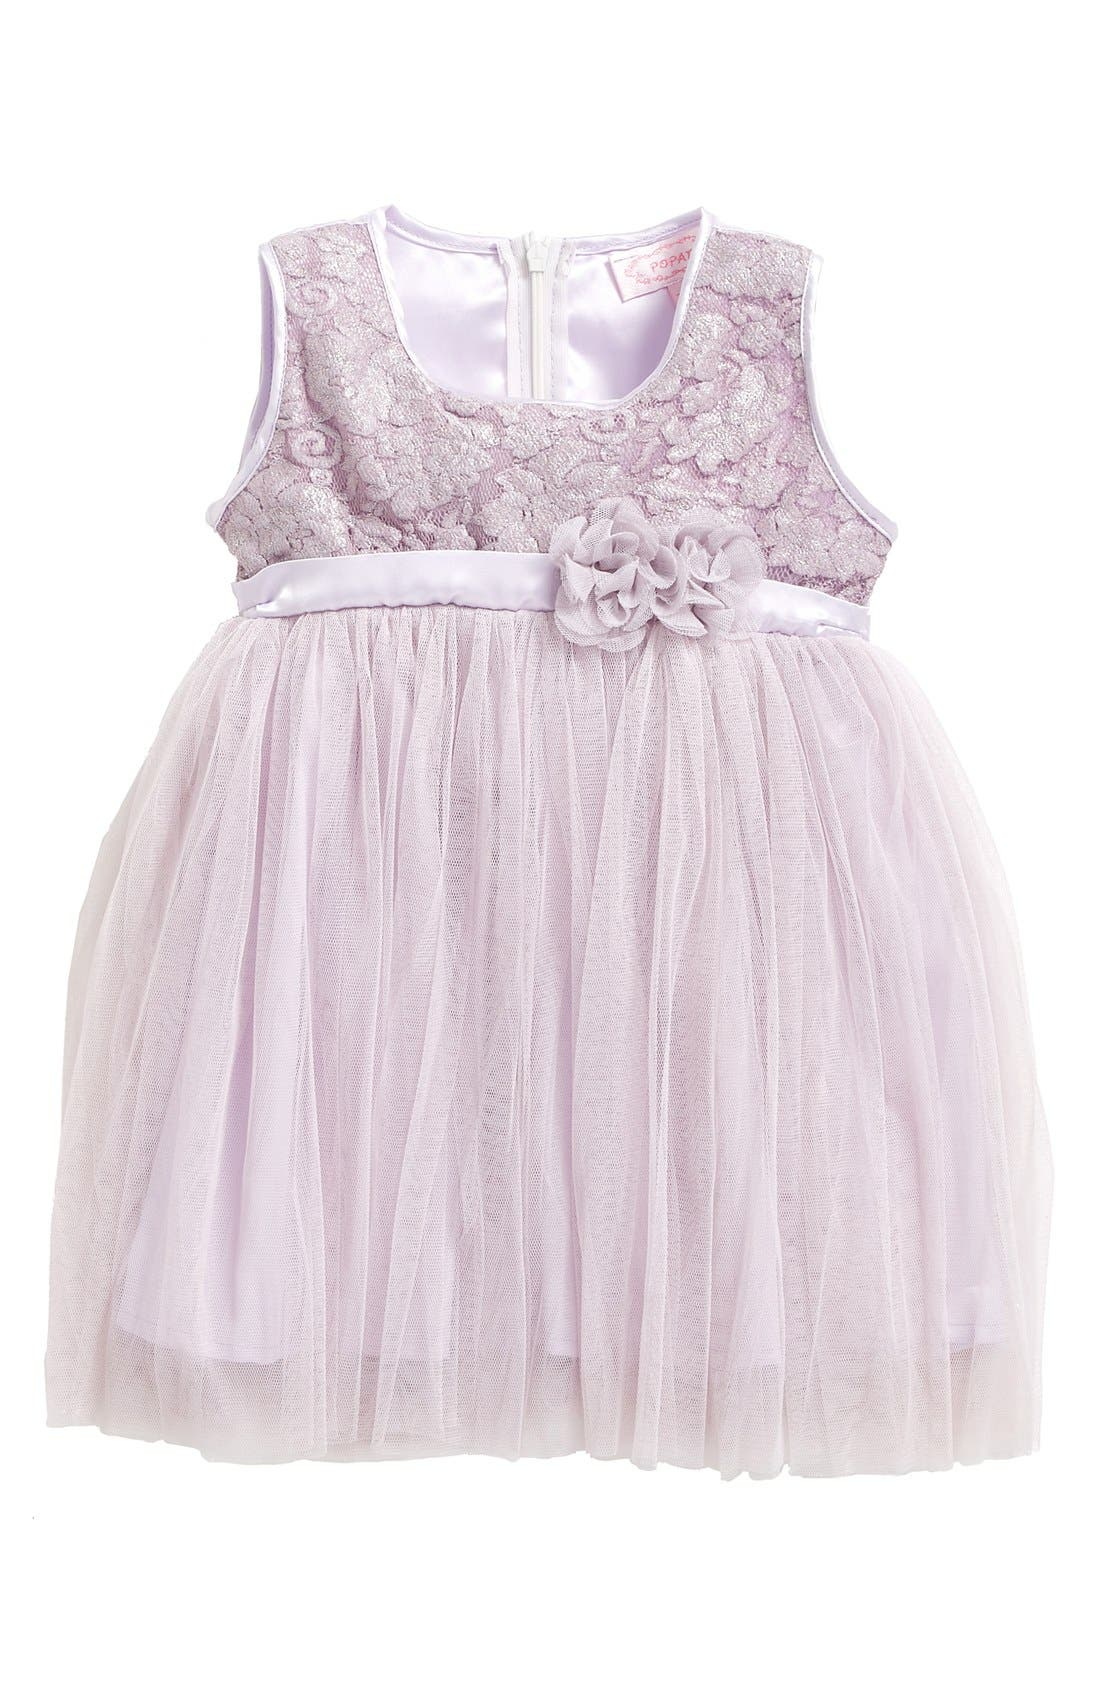 Popatu Empire Waist Lace Dress (Baby Girls)